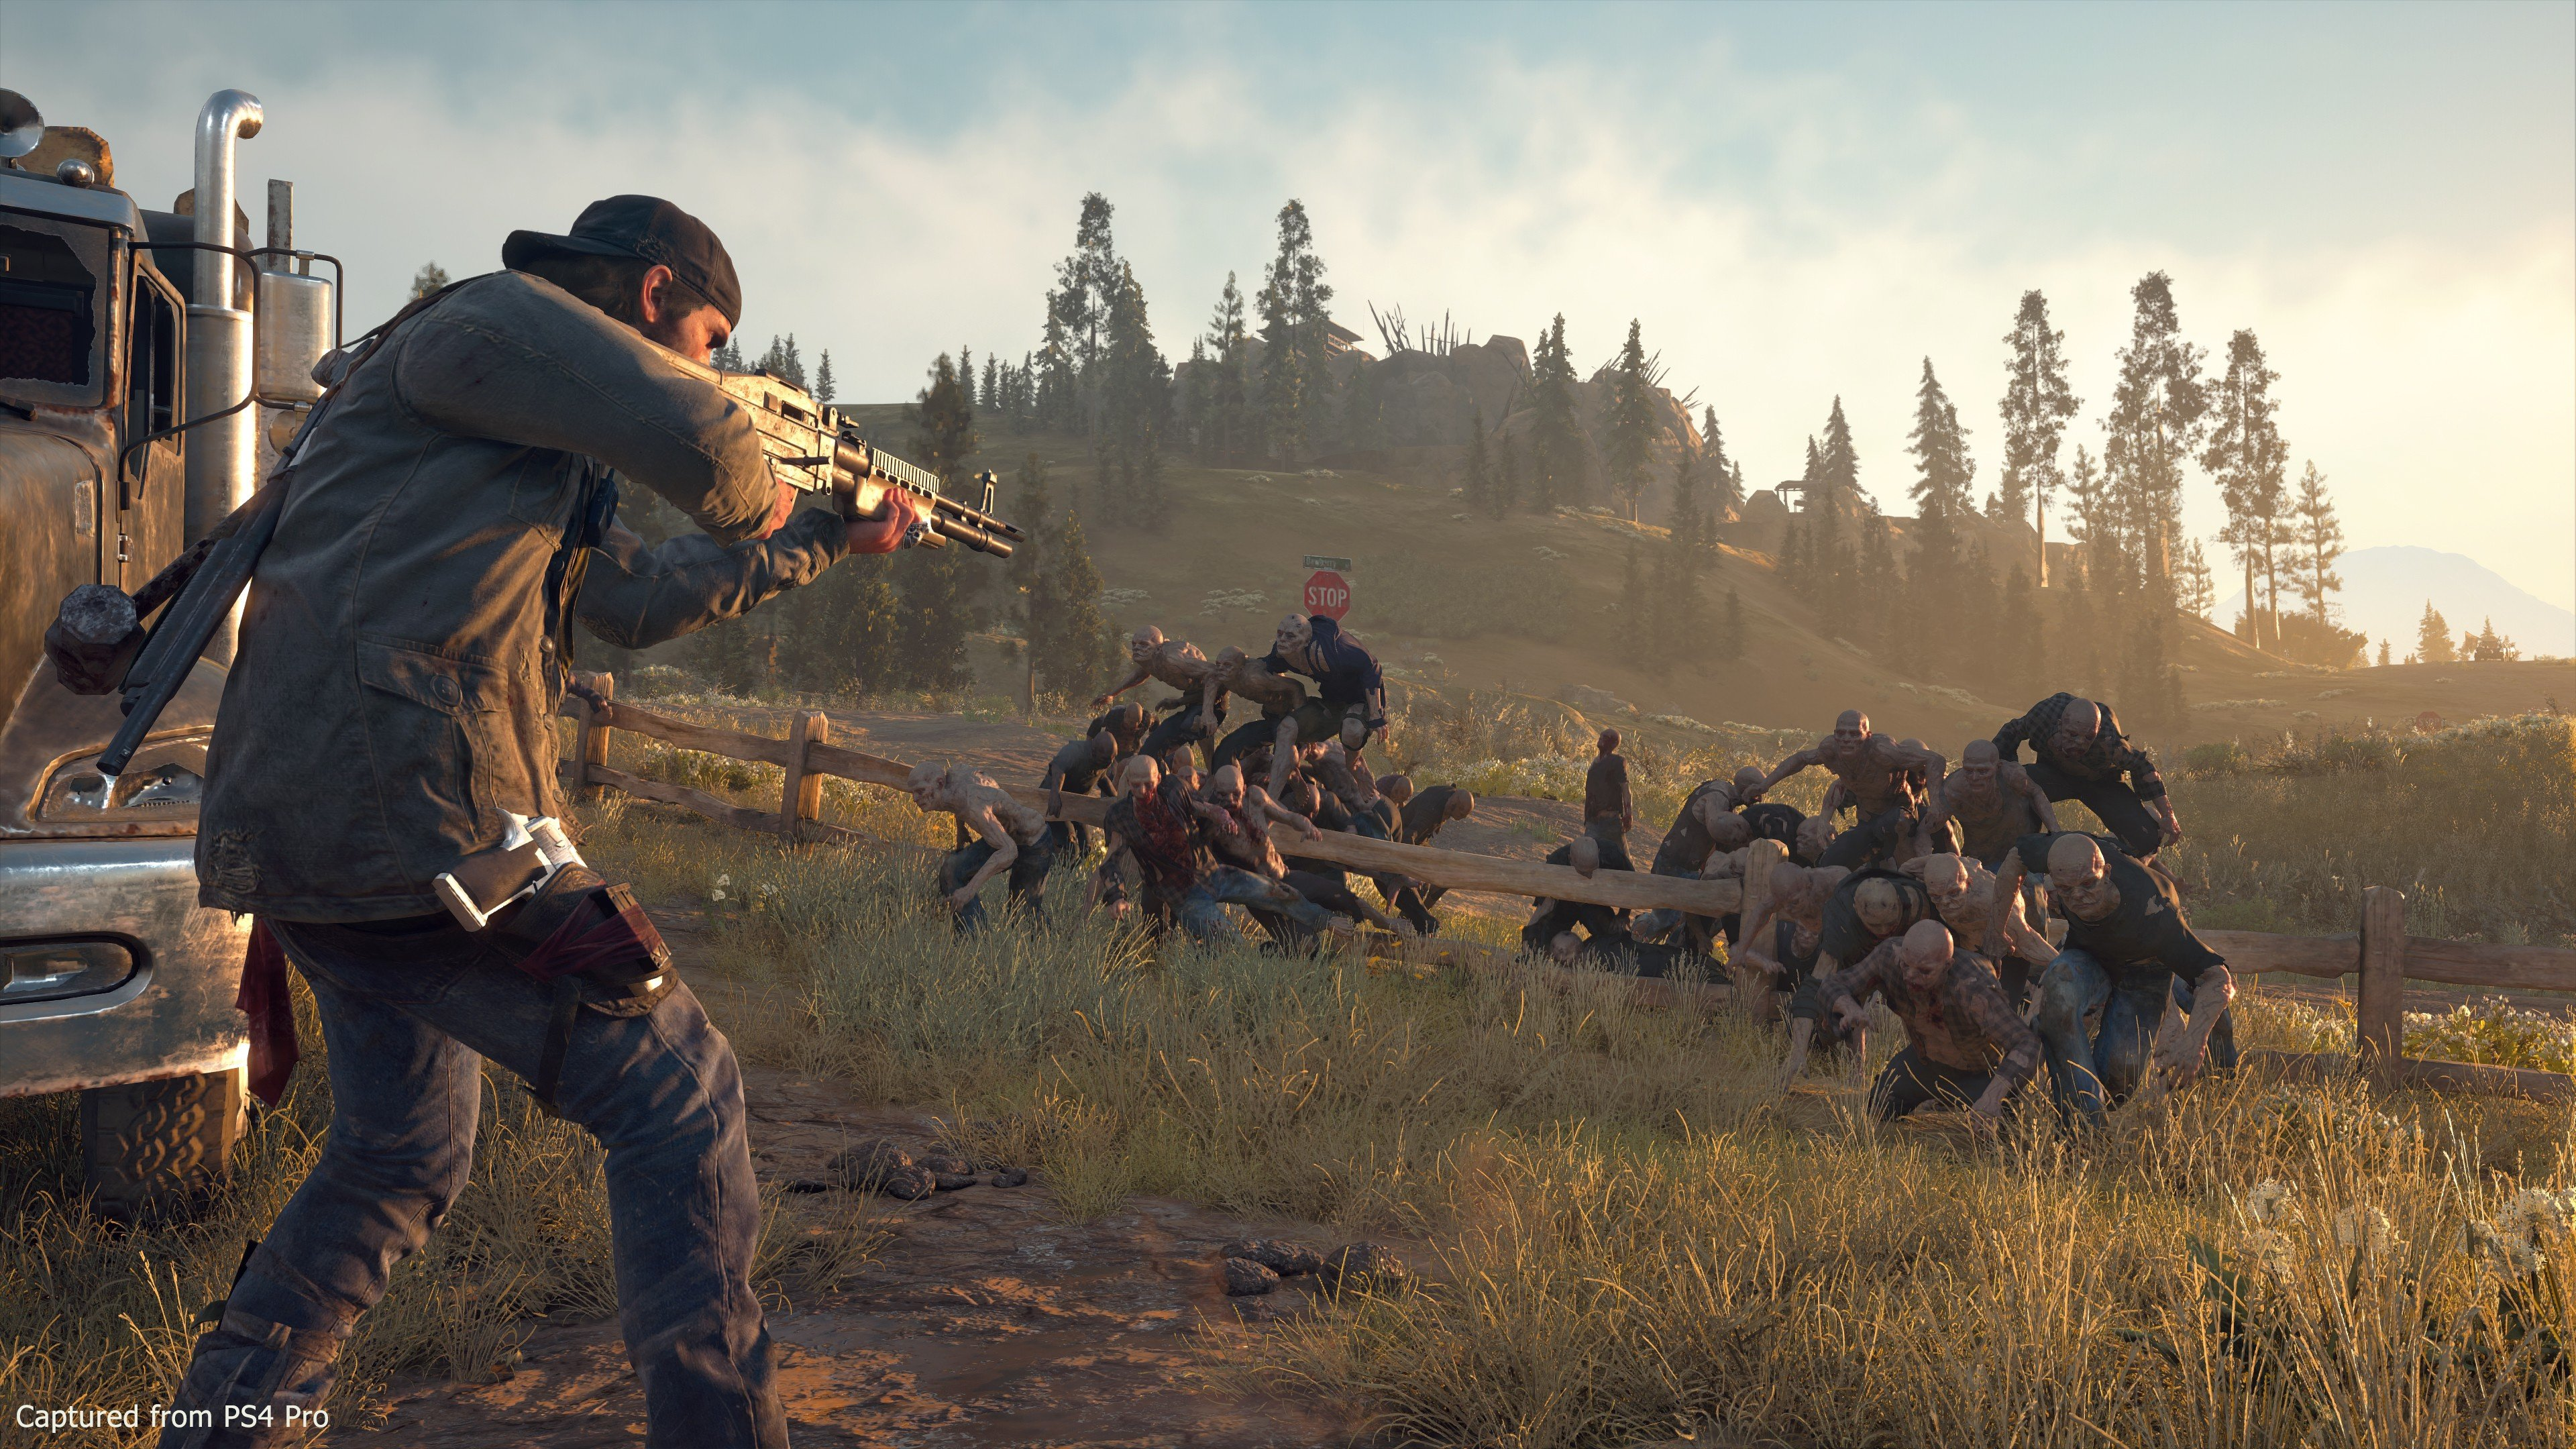 Days Gone has been delayed to April 26, 2019